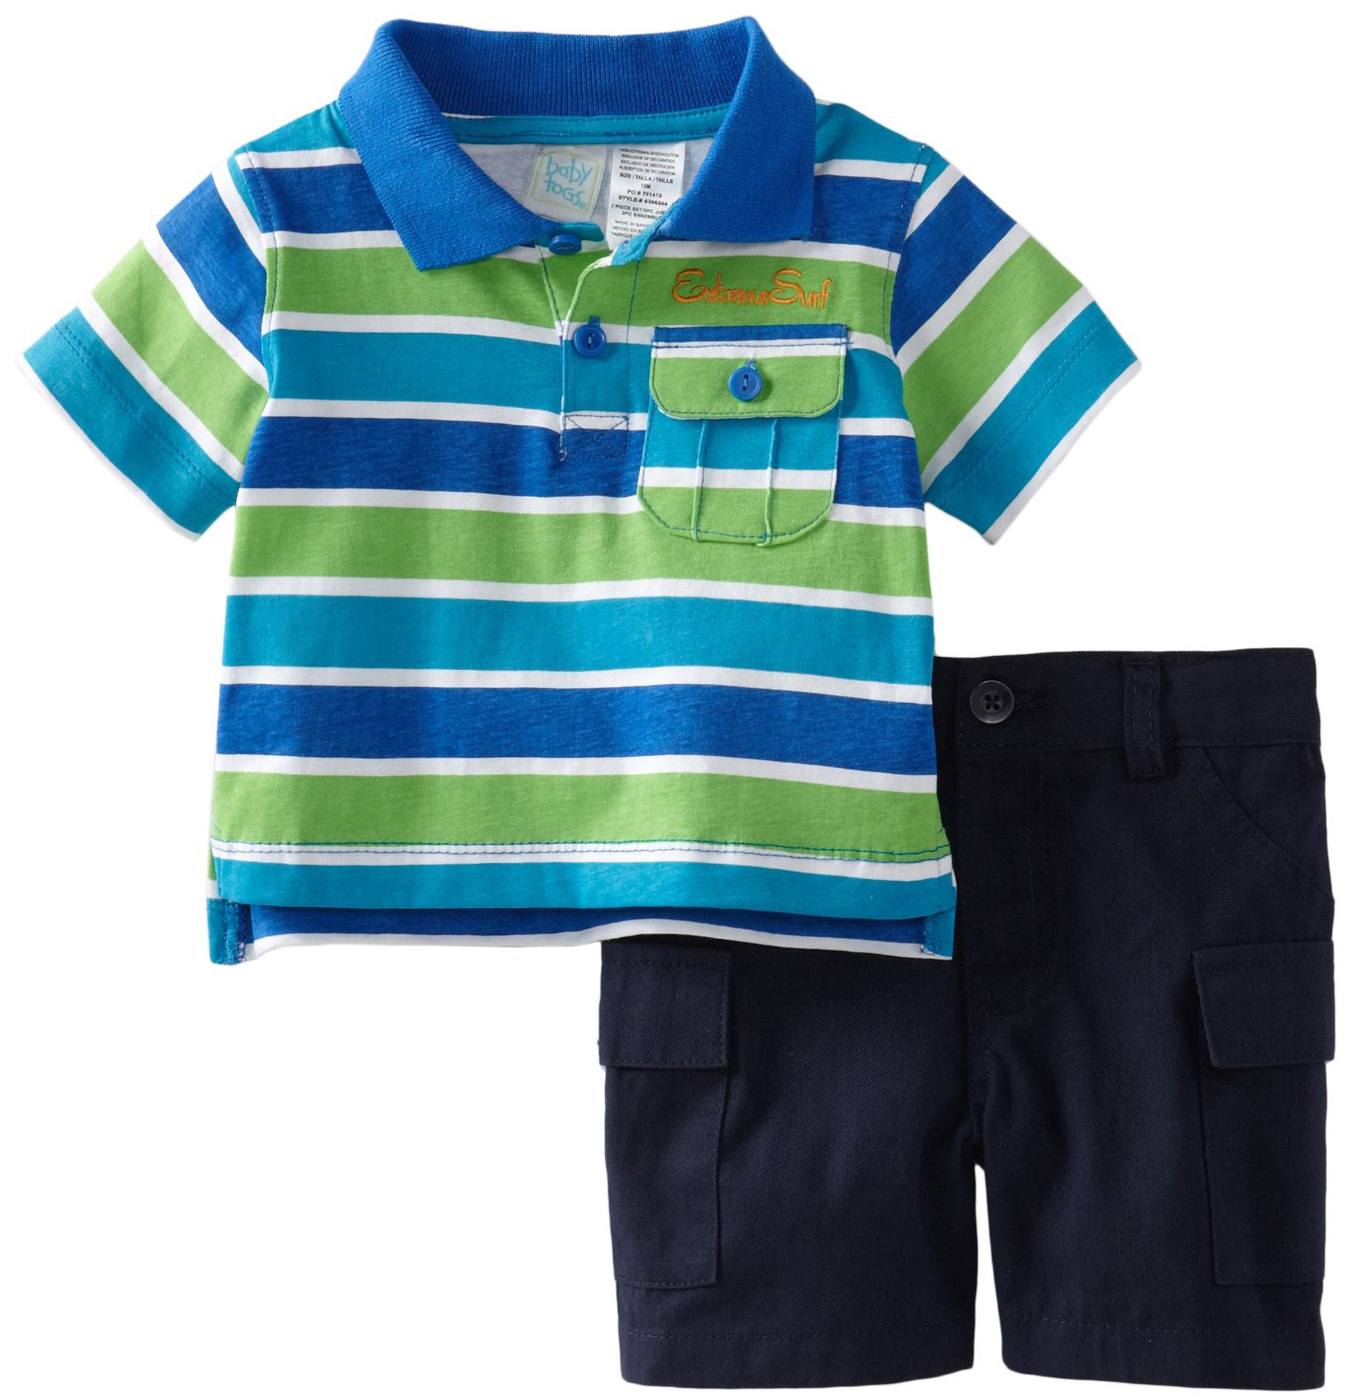 Baby Togs Toddler Boys 2 Piece Blue Striped Polo Shirt Navy Cargo Shorts Set at Sears.com